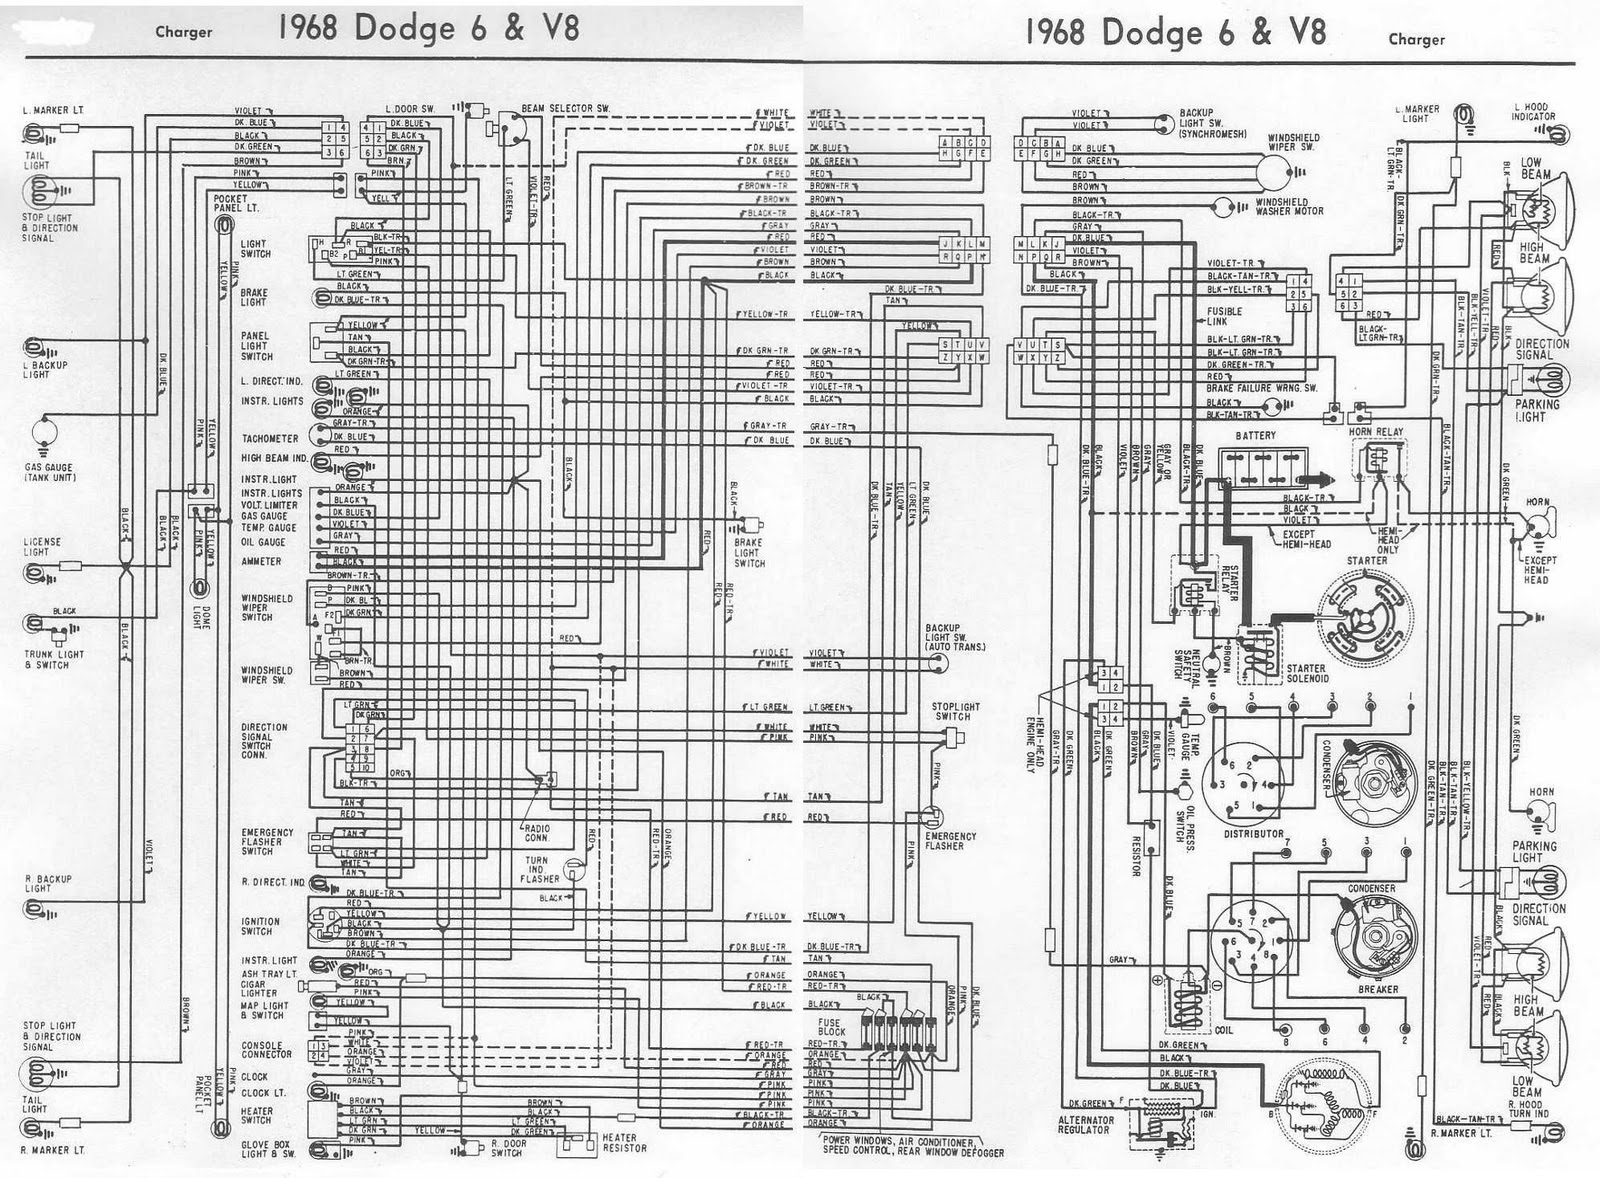 1968 dodge charger ac wiring diagram wiring diagram hub 1969 charger wiring diagram wiring diagram for [ 1600 x 1178 Pixel ]